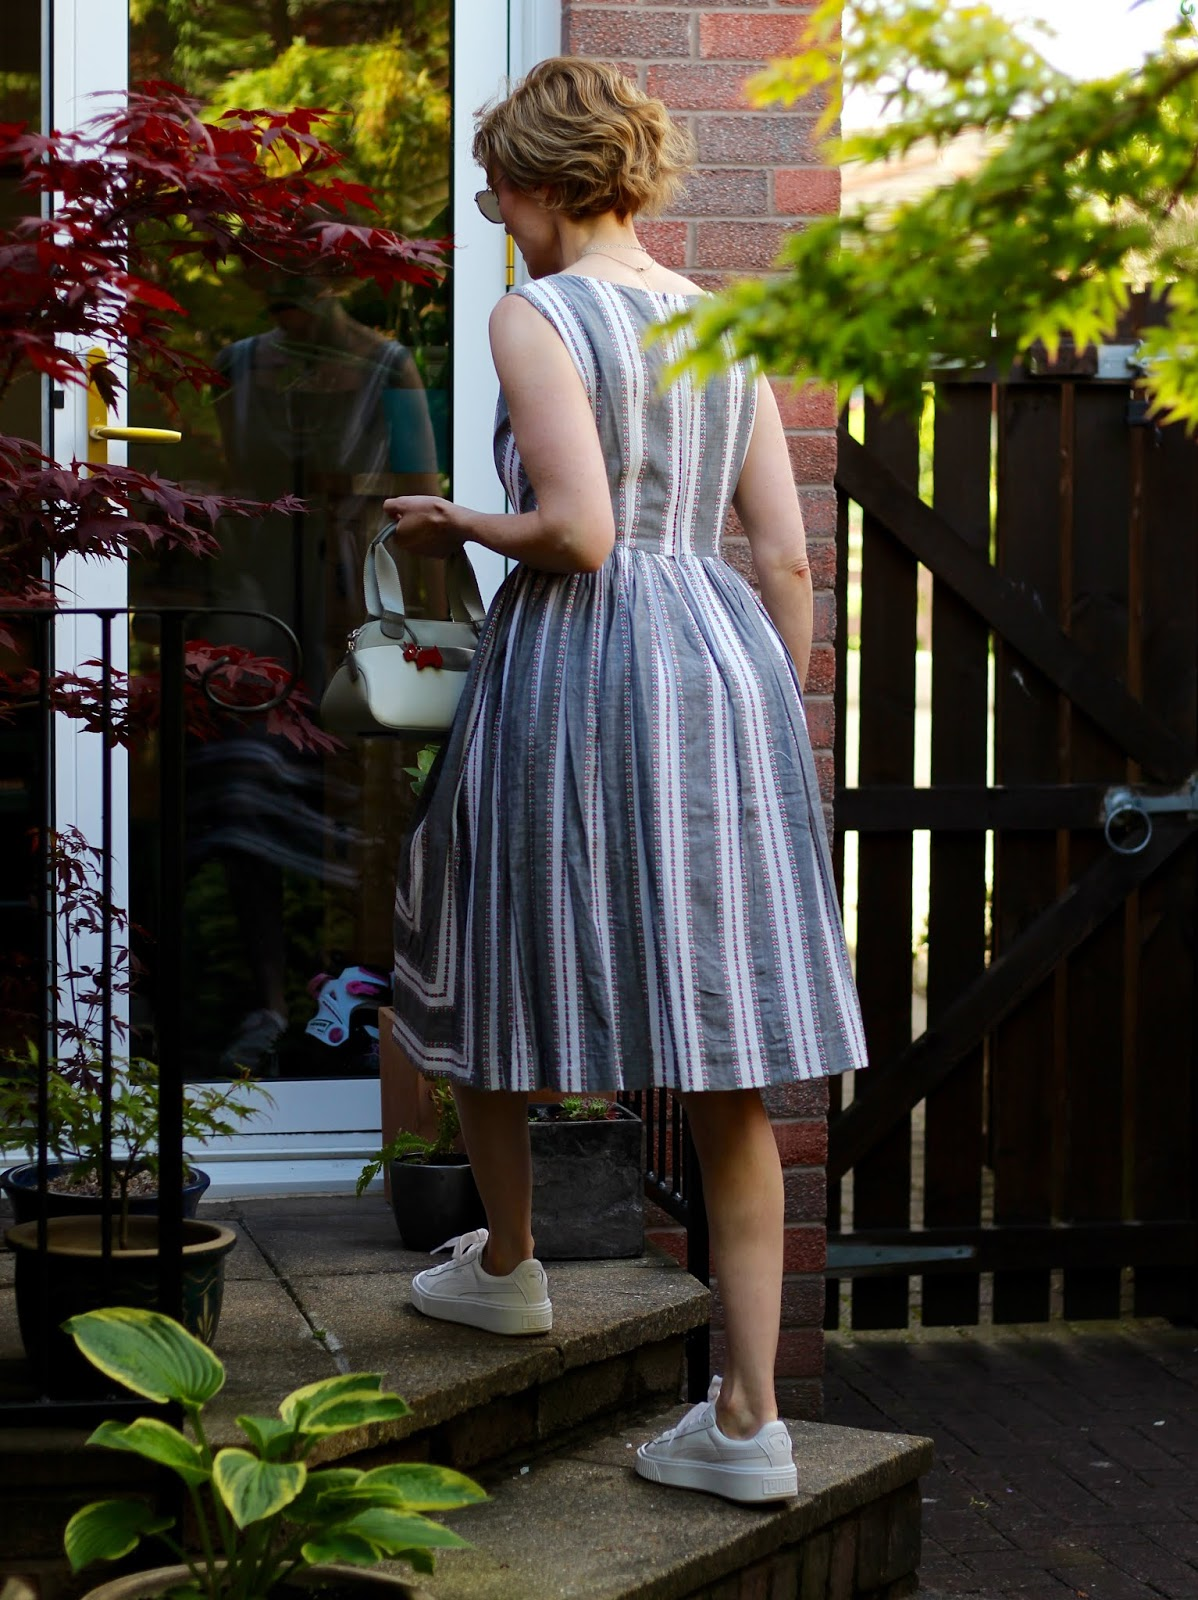 Vintage 1950s Summer Dress Outfit | Fake Fabulous